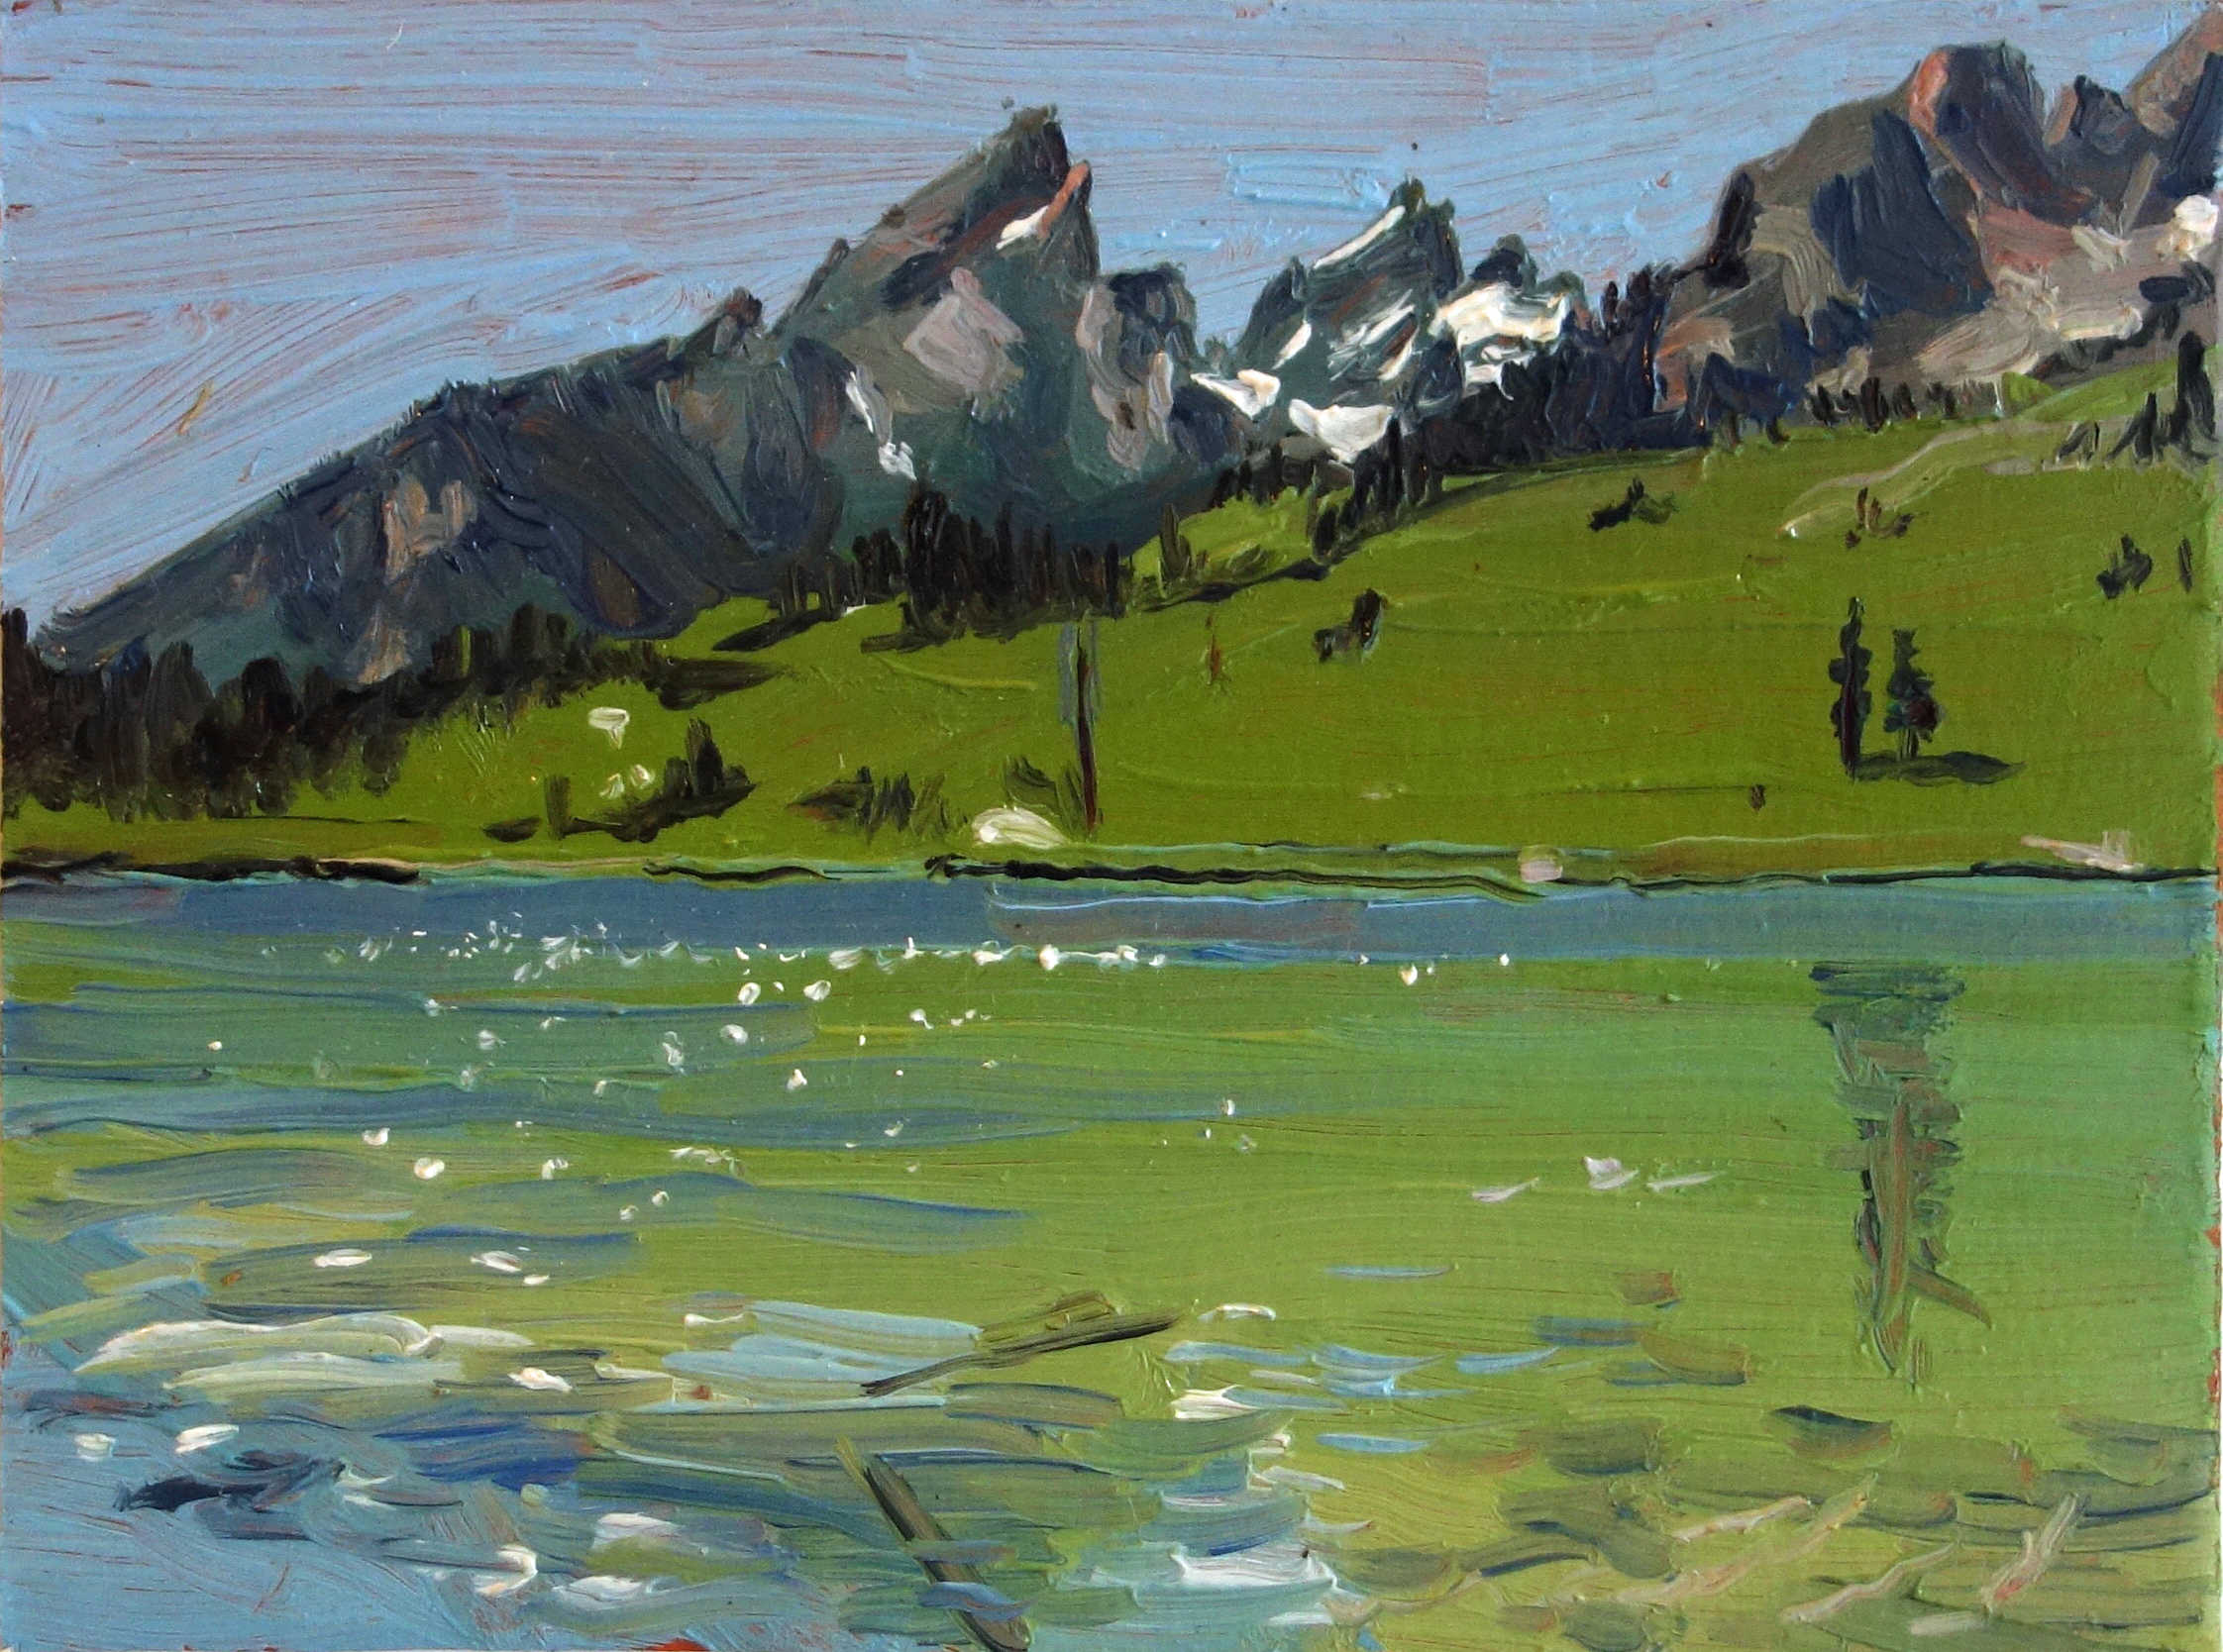 Leigh_Lake_Jackson_Hole_WY_Oil_on_Paper_Painting_6x4.5_Maud_Taber_Thomas_Washington_DC_Georgetown